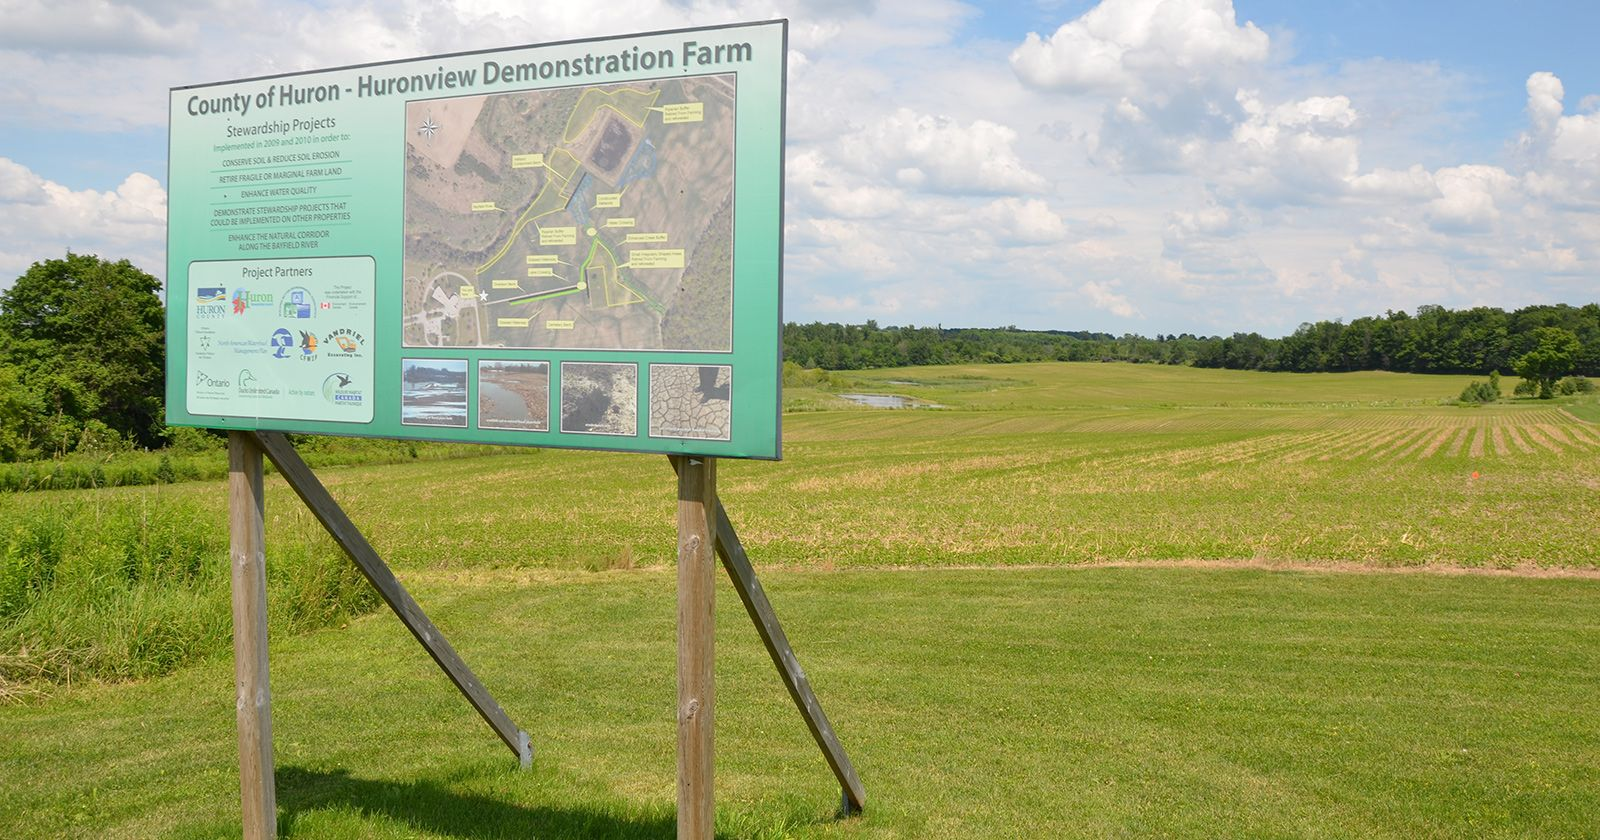 Huron County demonstration farm near Clinton